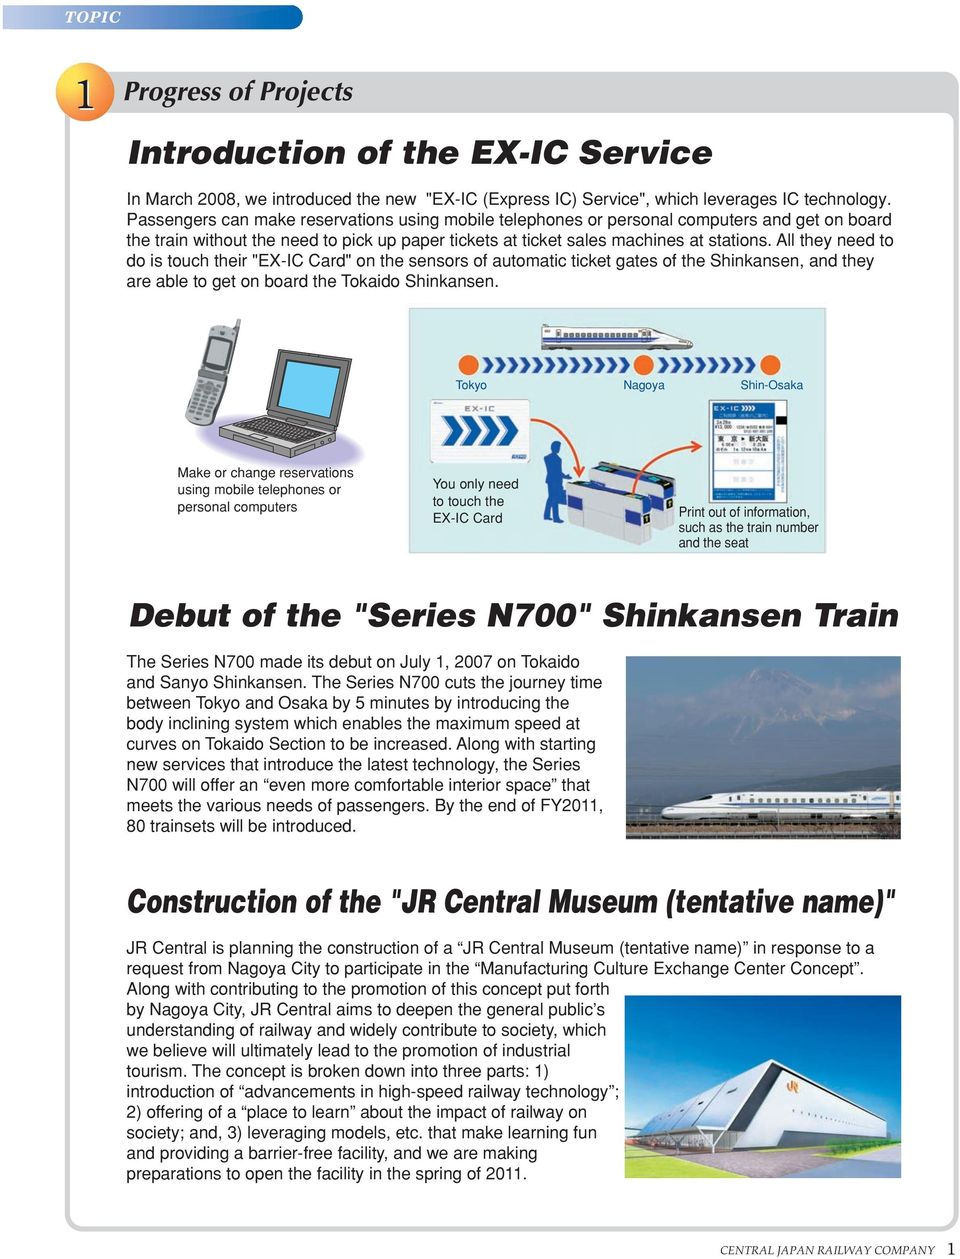 "All they need to do is touch their ""EX-IC Card"" on the sensors of automatic ticket gates of the Shinkansen, and they are able to get on board the Tokaido Shinkansen."